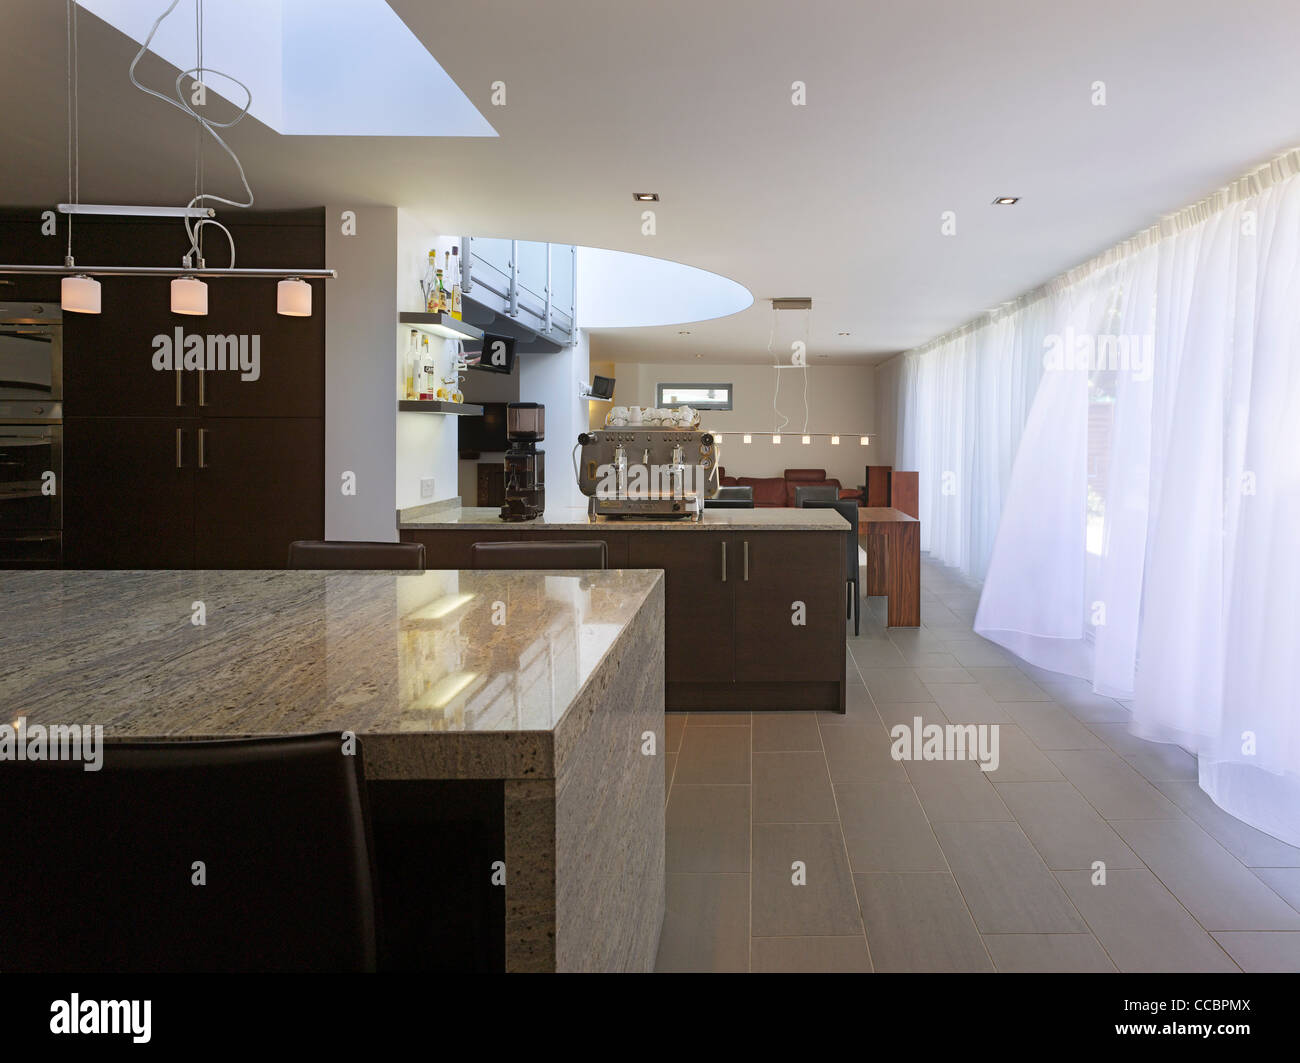 Dreamlike And Kitchen Stock Photos & Dreamlike And Kitchen Stock ...